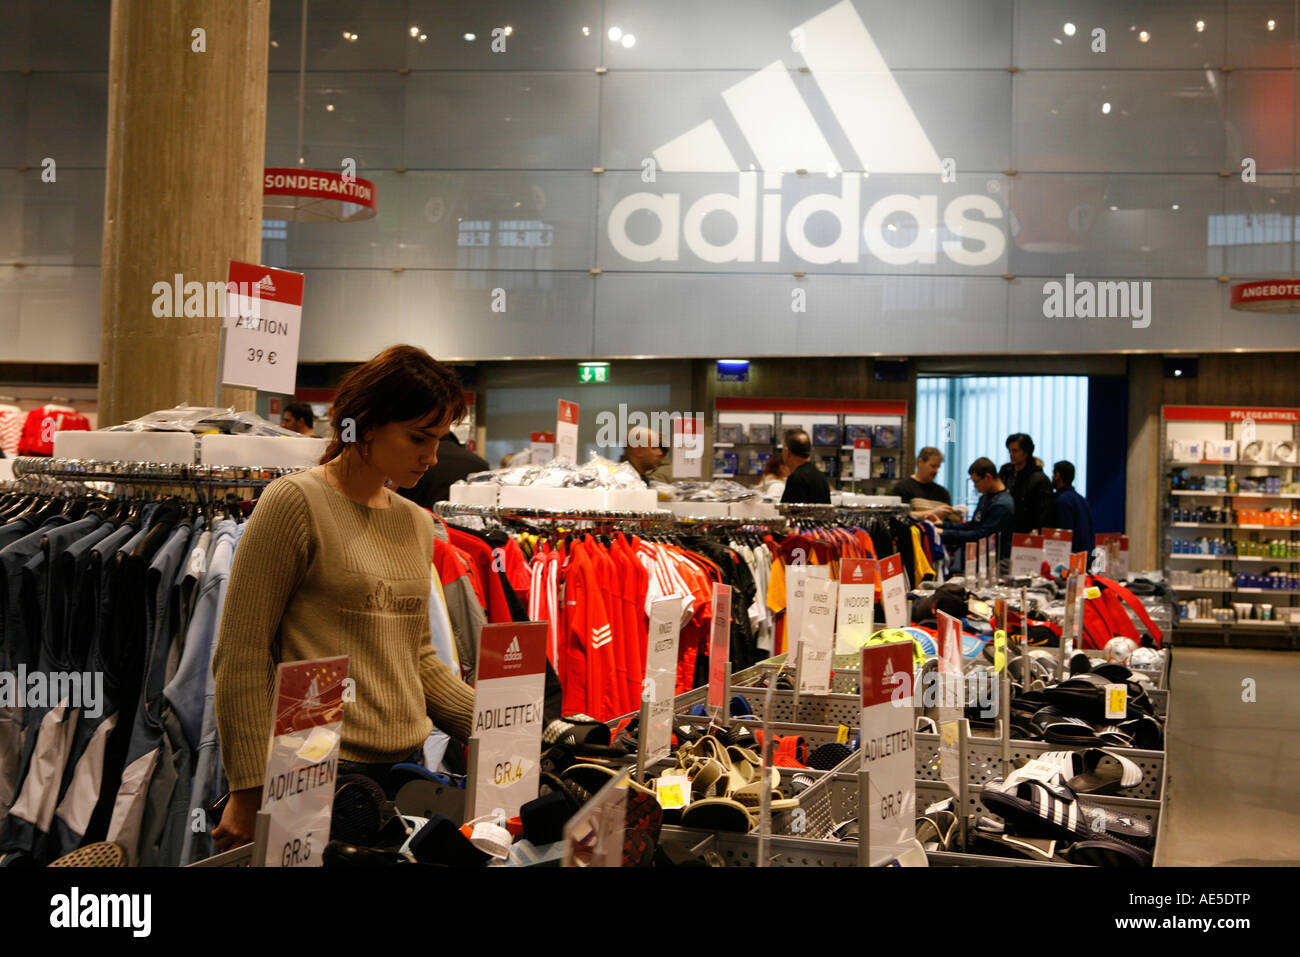 e311bca7 Adidas Headquarter and Factory Outlet in Herzogenaurach, Germany - Stock  Image